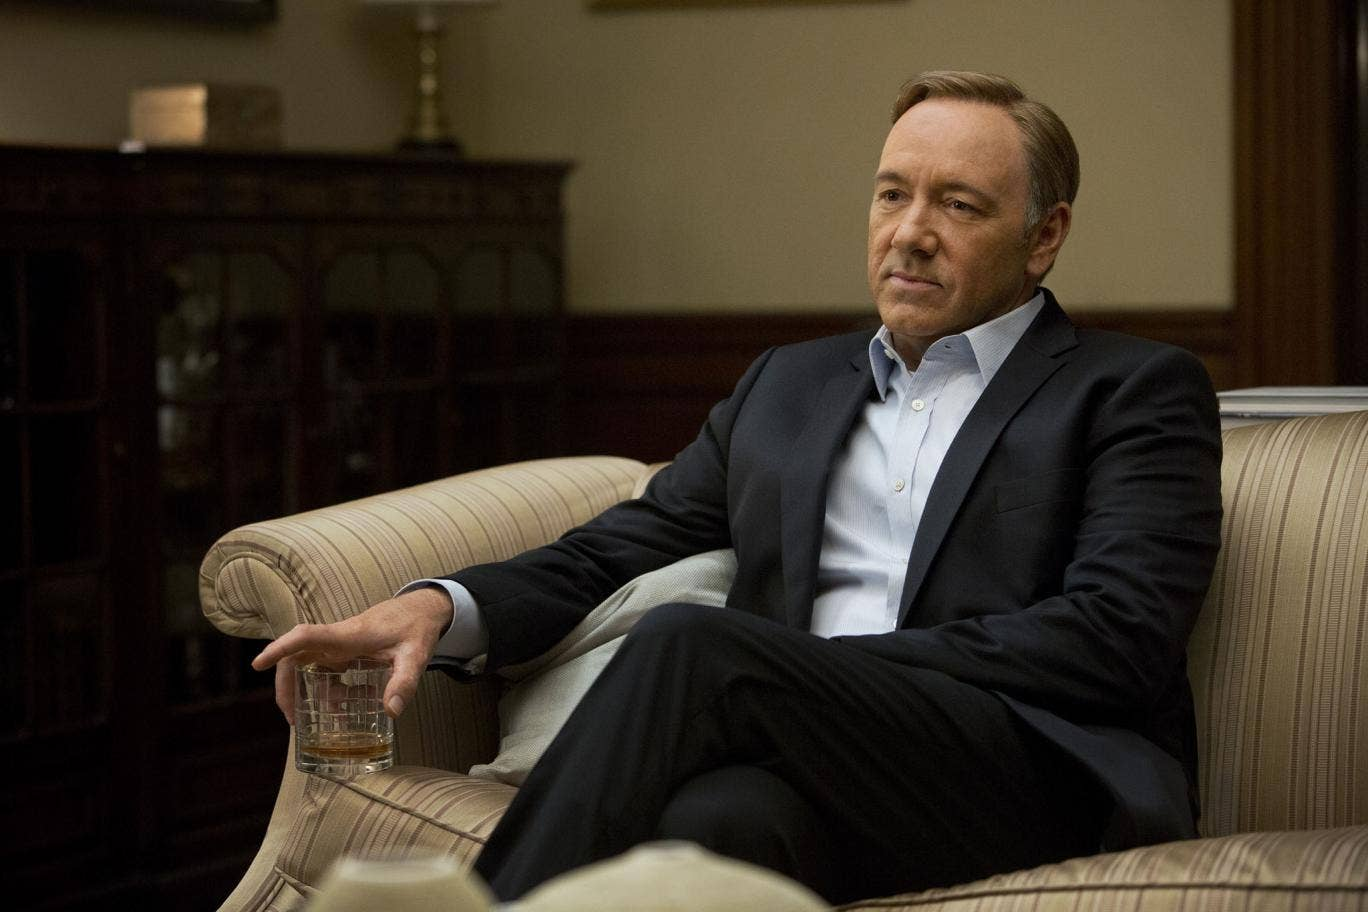 """Kevin Spacey in a scene from """"House of Cards"""". The 13-episode series was made available on Netflix earlier this year."""